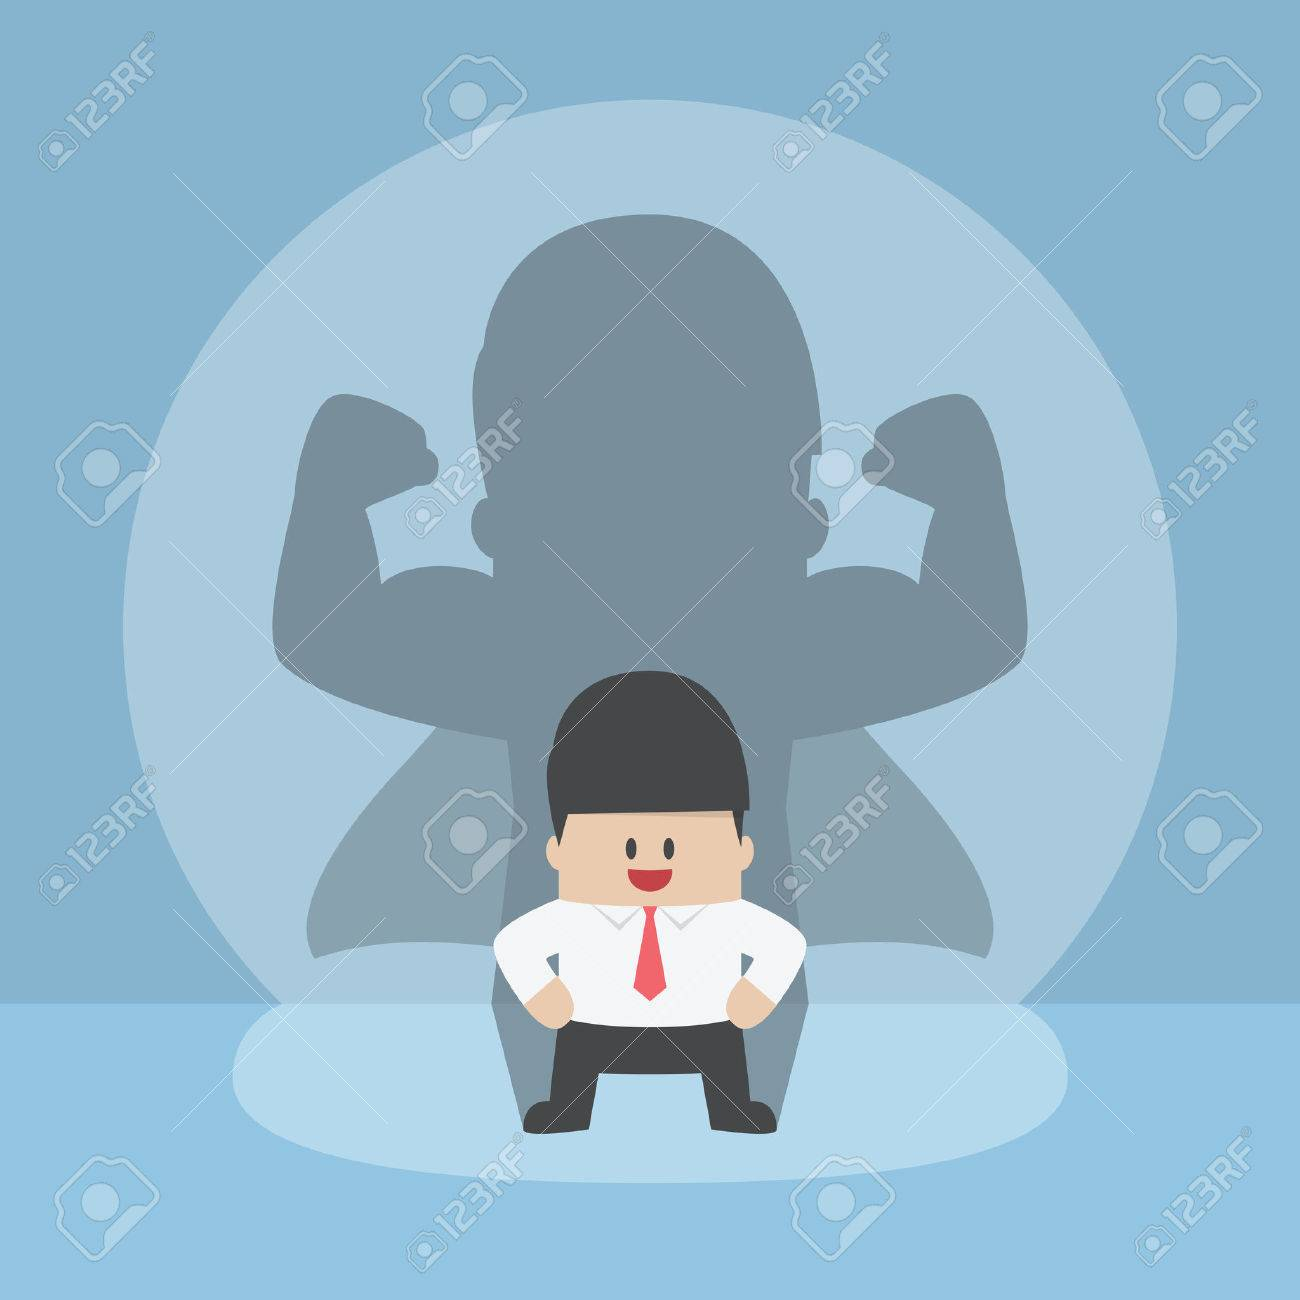 Businessman with his strong shadow, successful, leadership, confident concept - 52140352